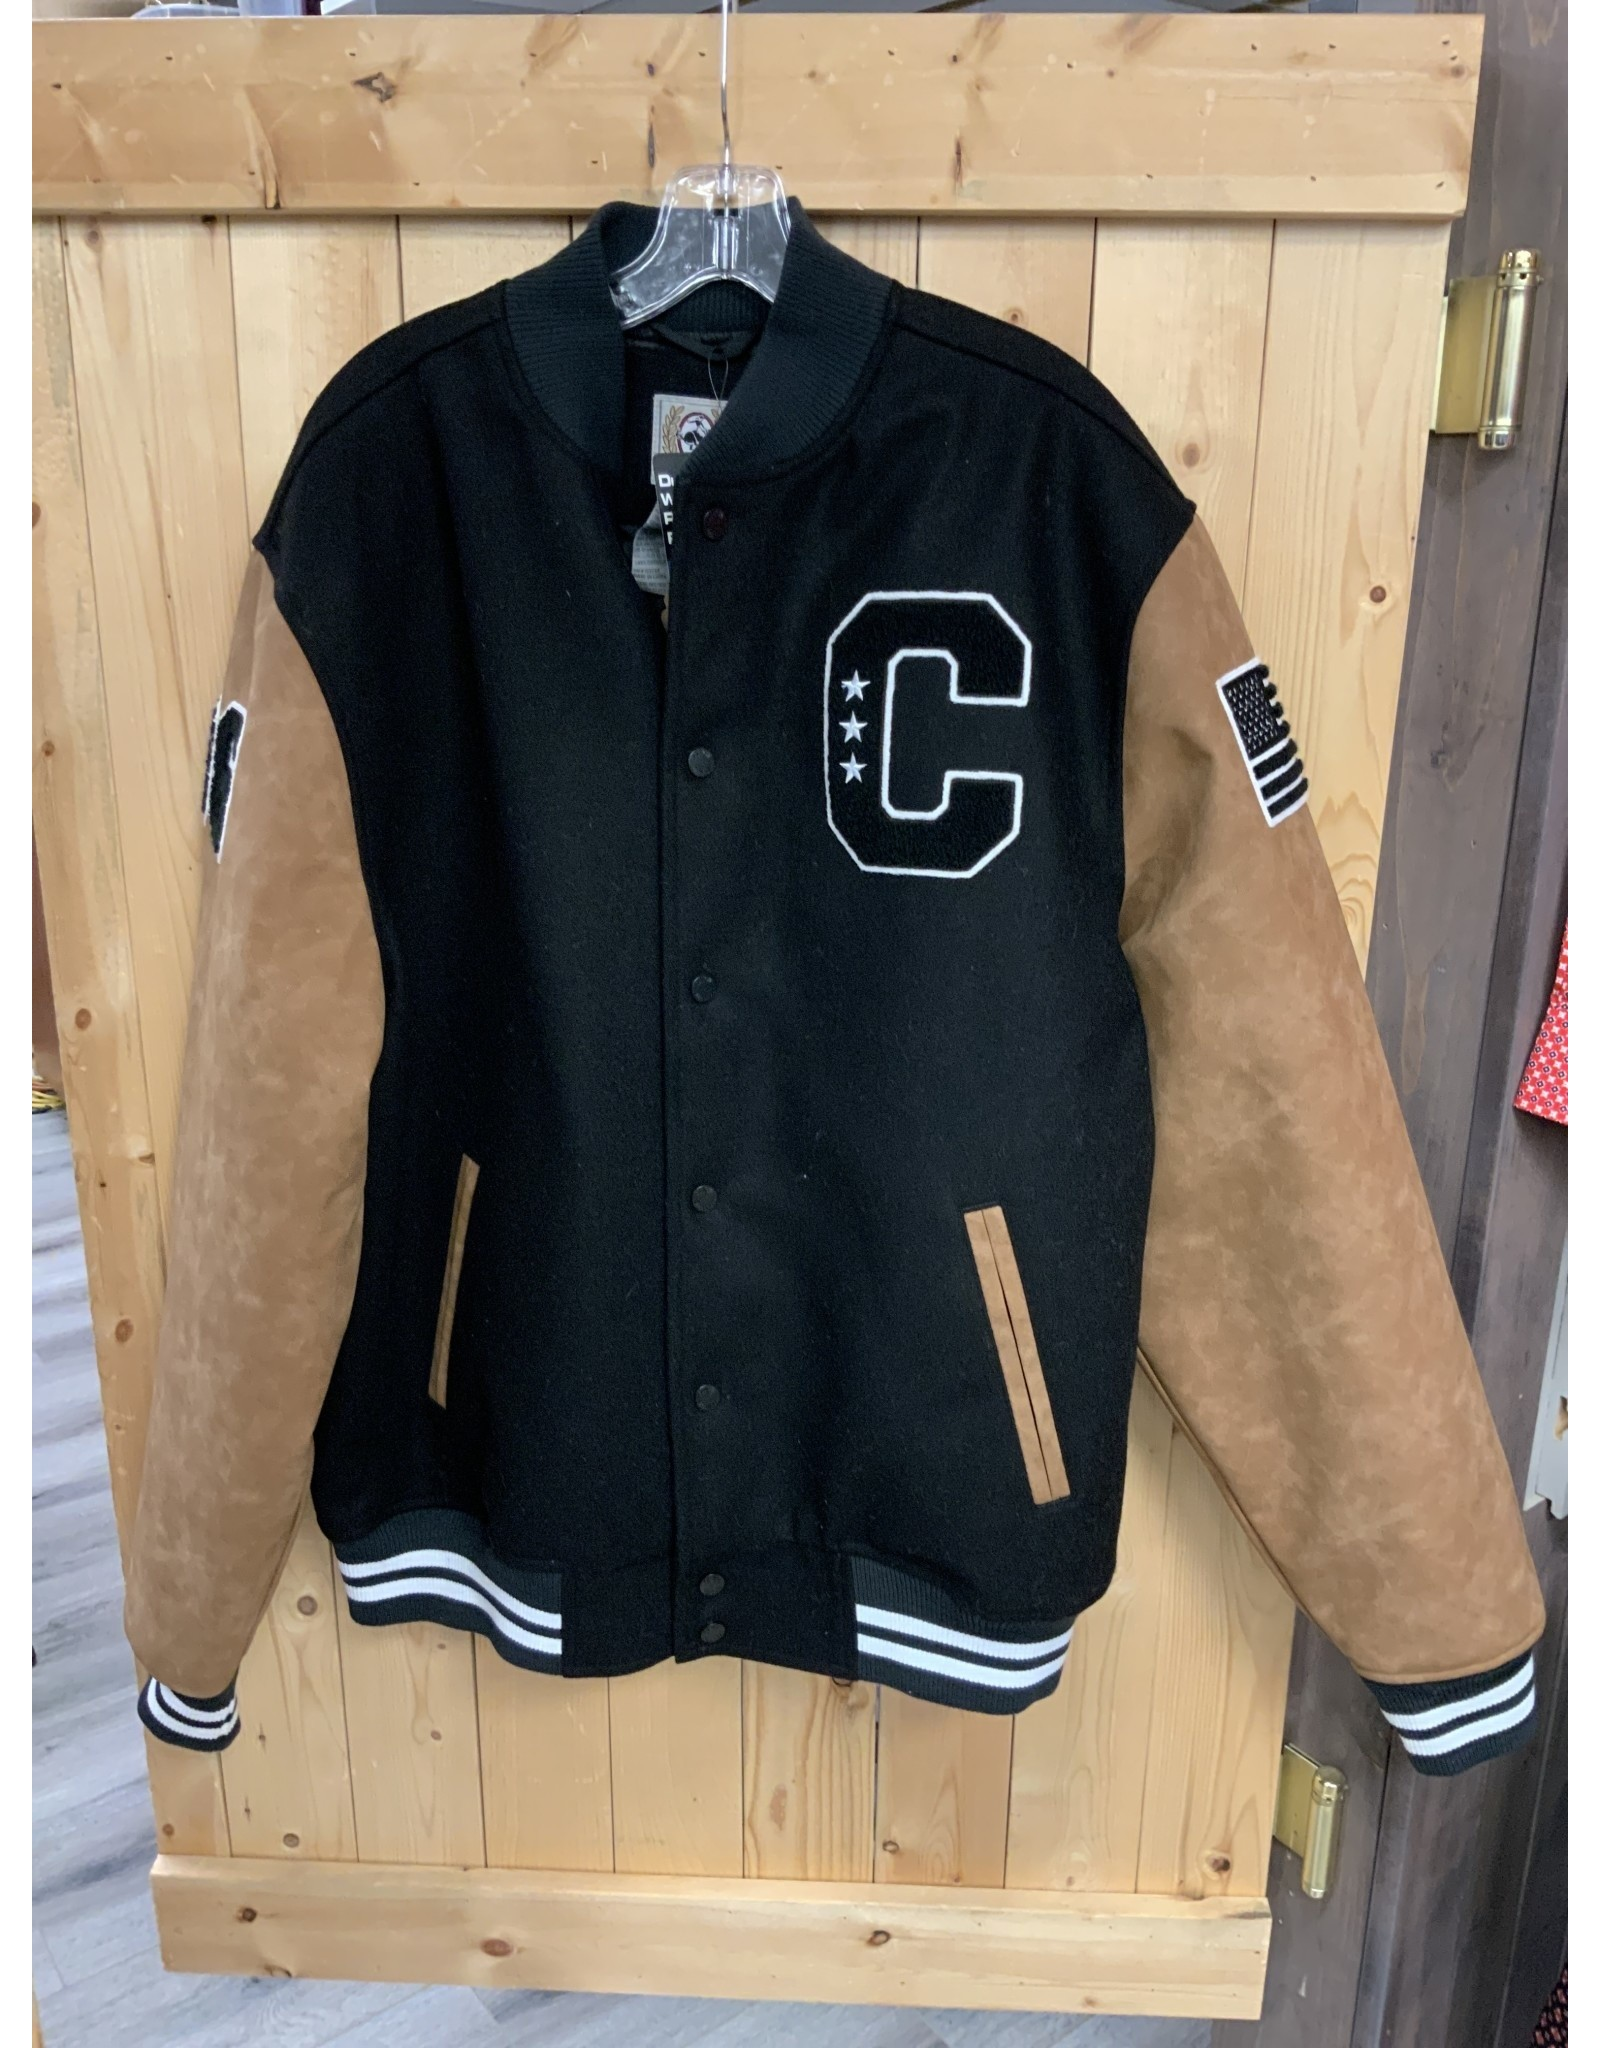 CINCH SNAP BUTTON RETRO JACKET WITH LOGO ON BACK